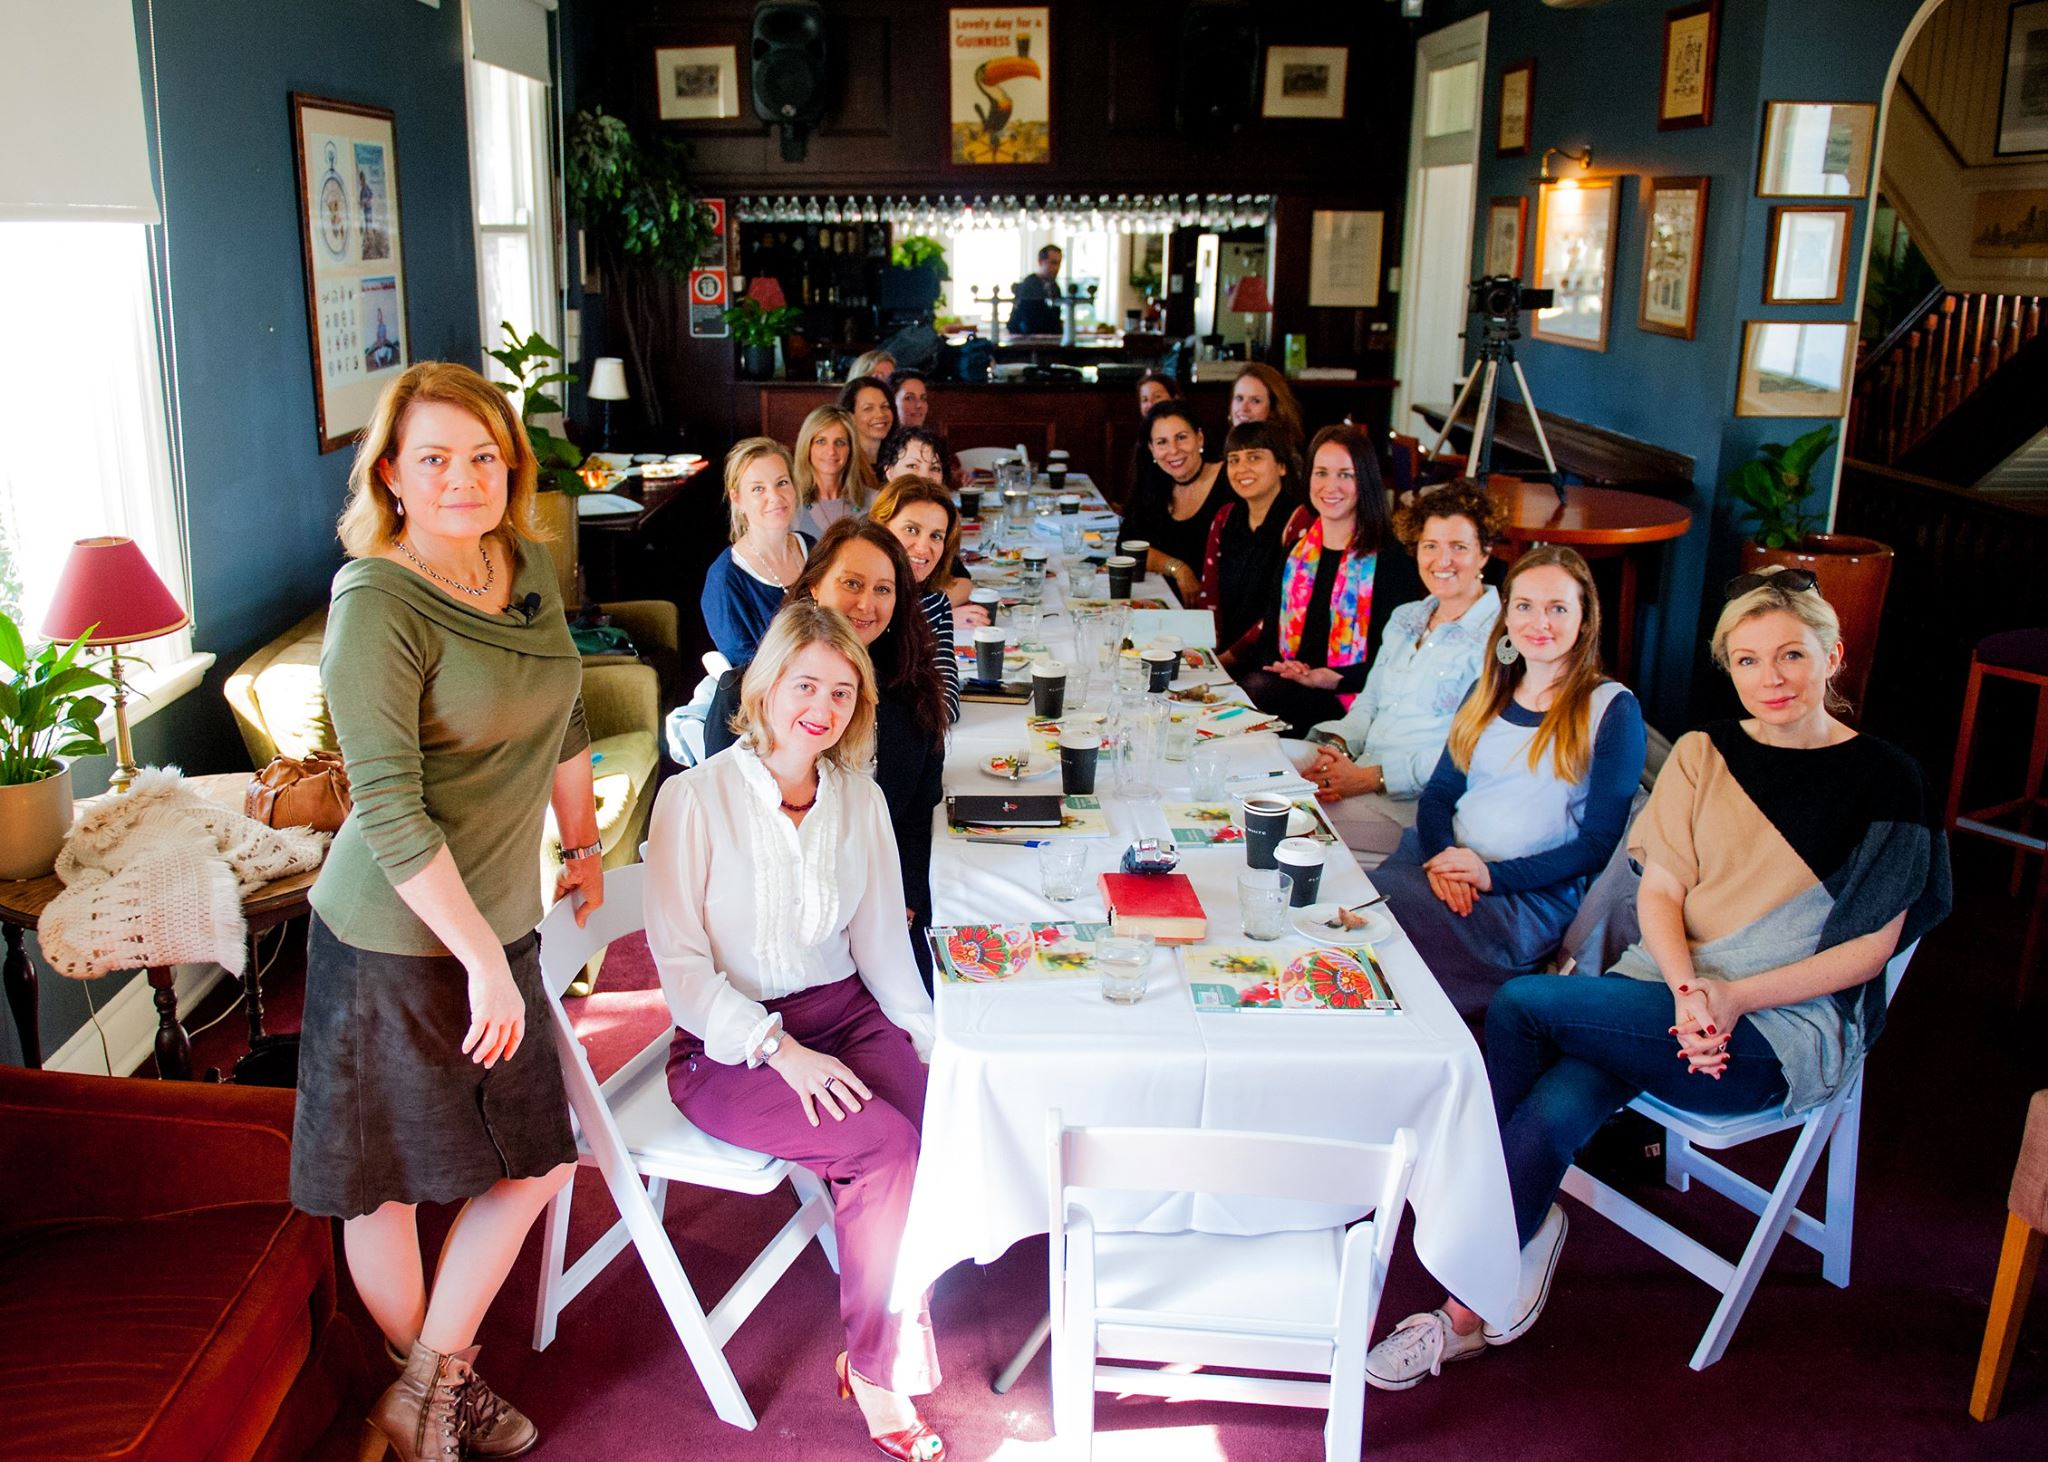 A roomful of creative mamas came to be inspired